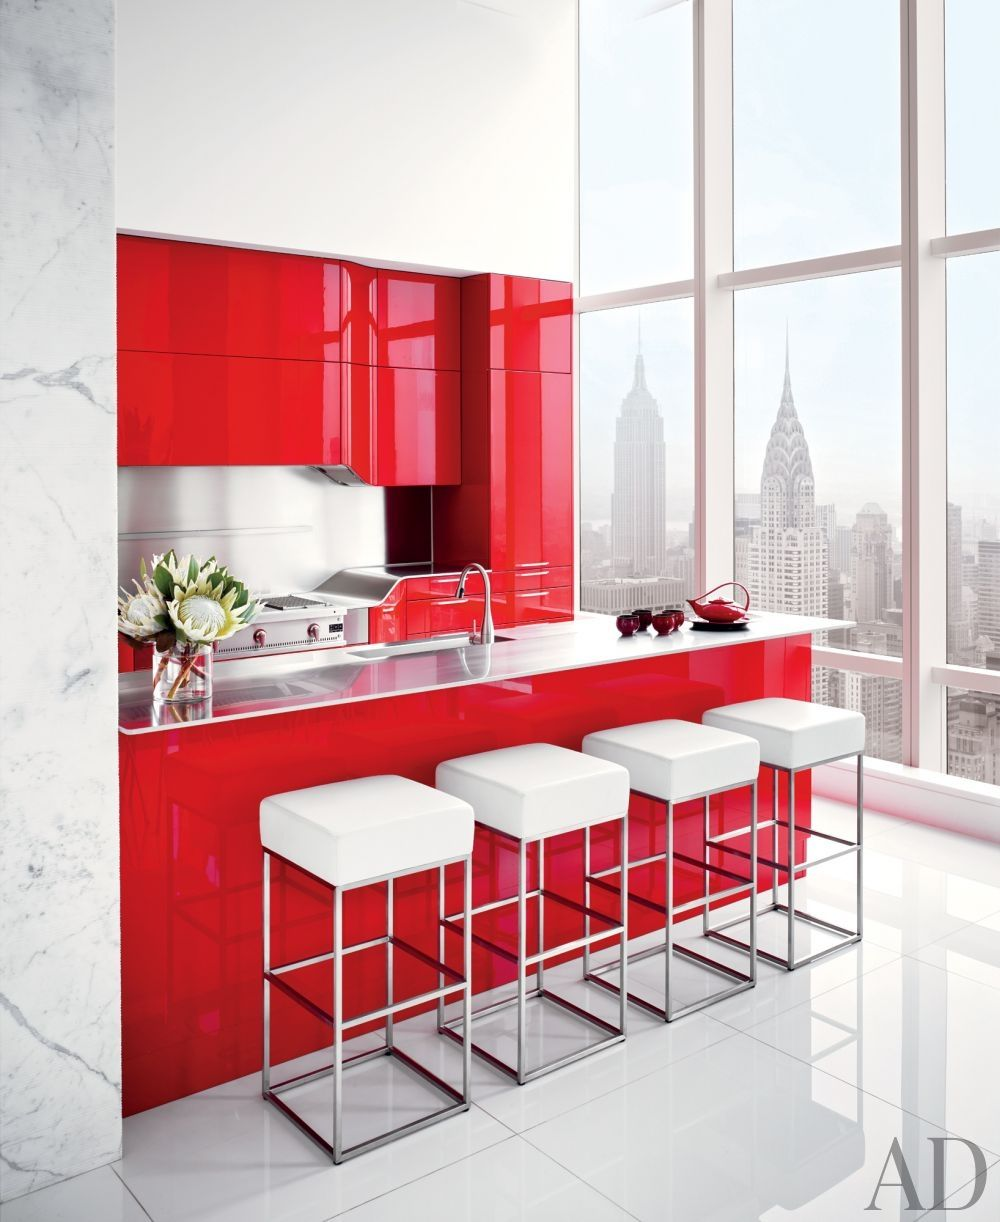 Contemporary Kitchen By Oda Architecture In A New York Residence The Kitchen S Red Lacquer Cabinetry Contemporary Kitchen Kitchen Design Small Kitchen Colors